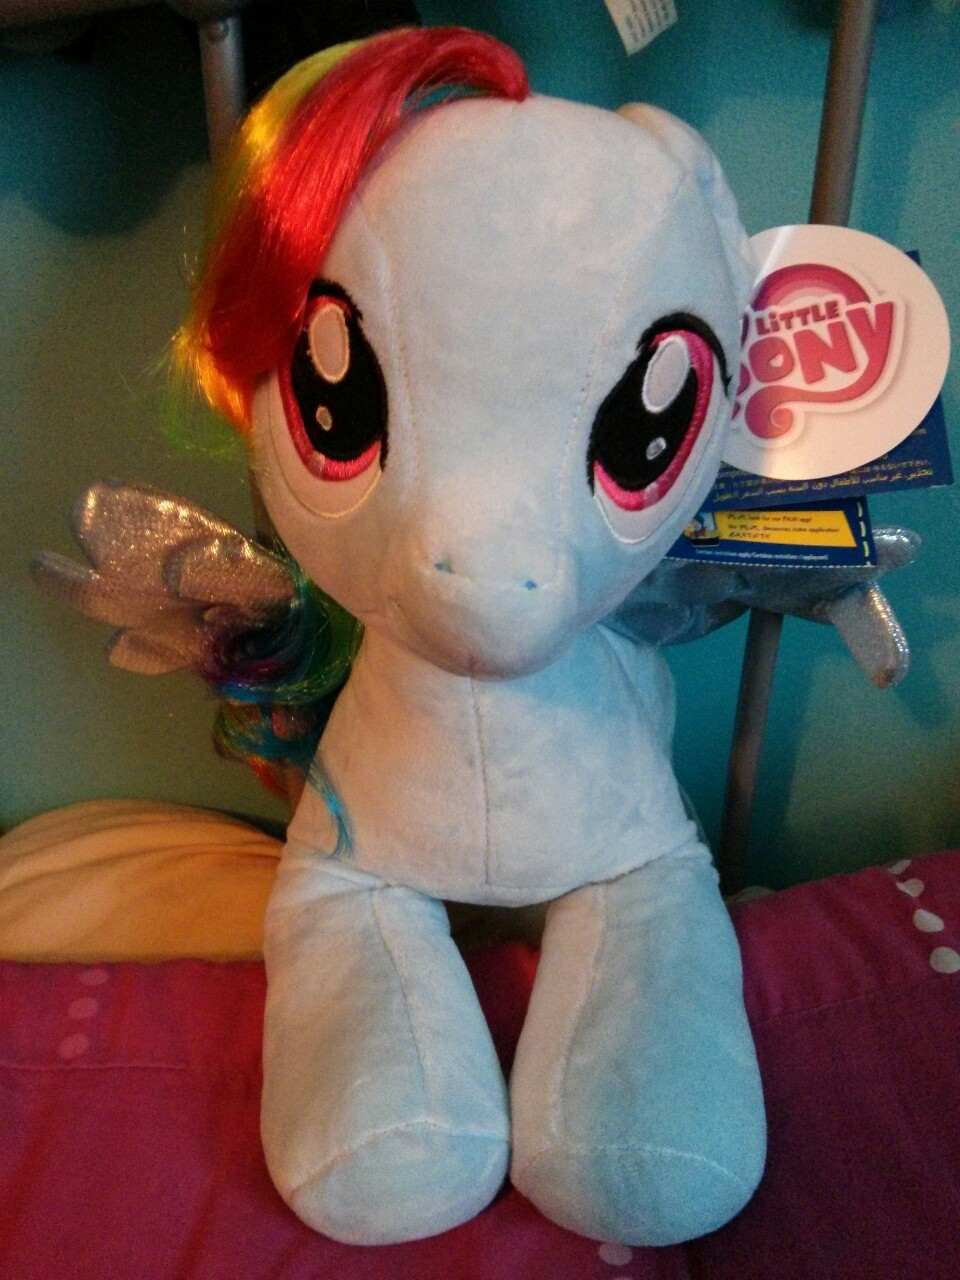 HEHEHEH I got a Rainbow Dash from Build-A-Bear….